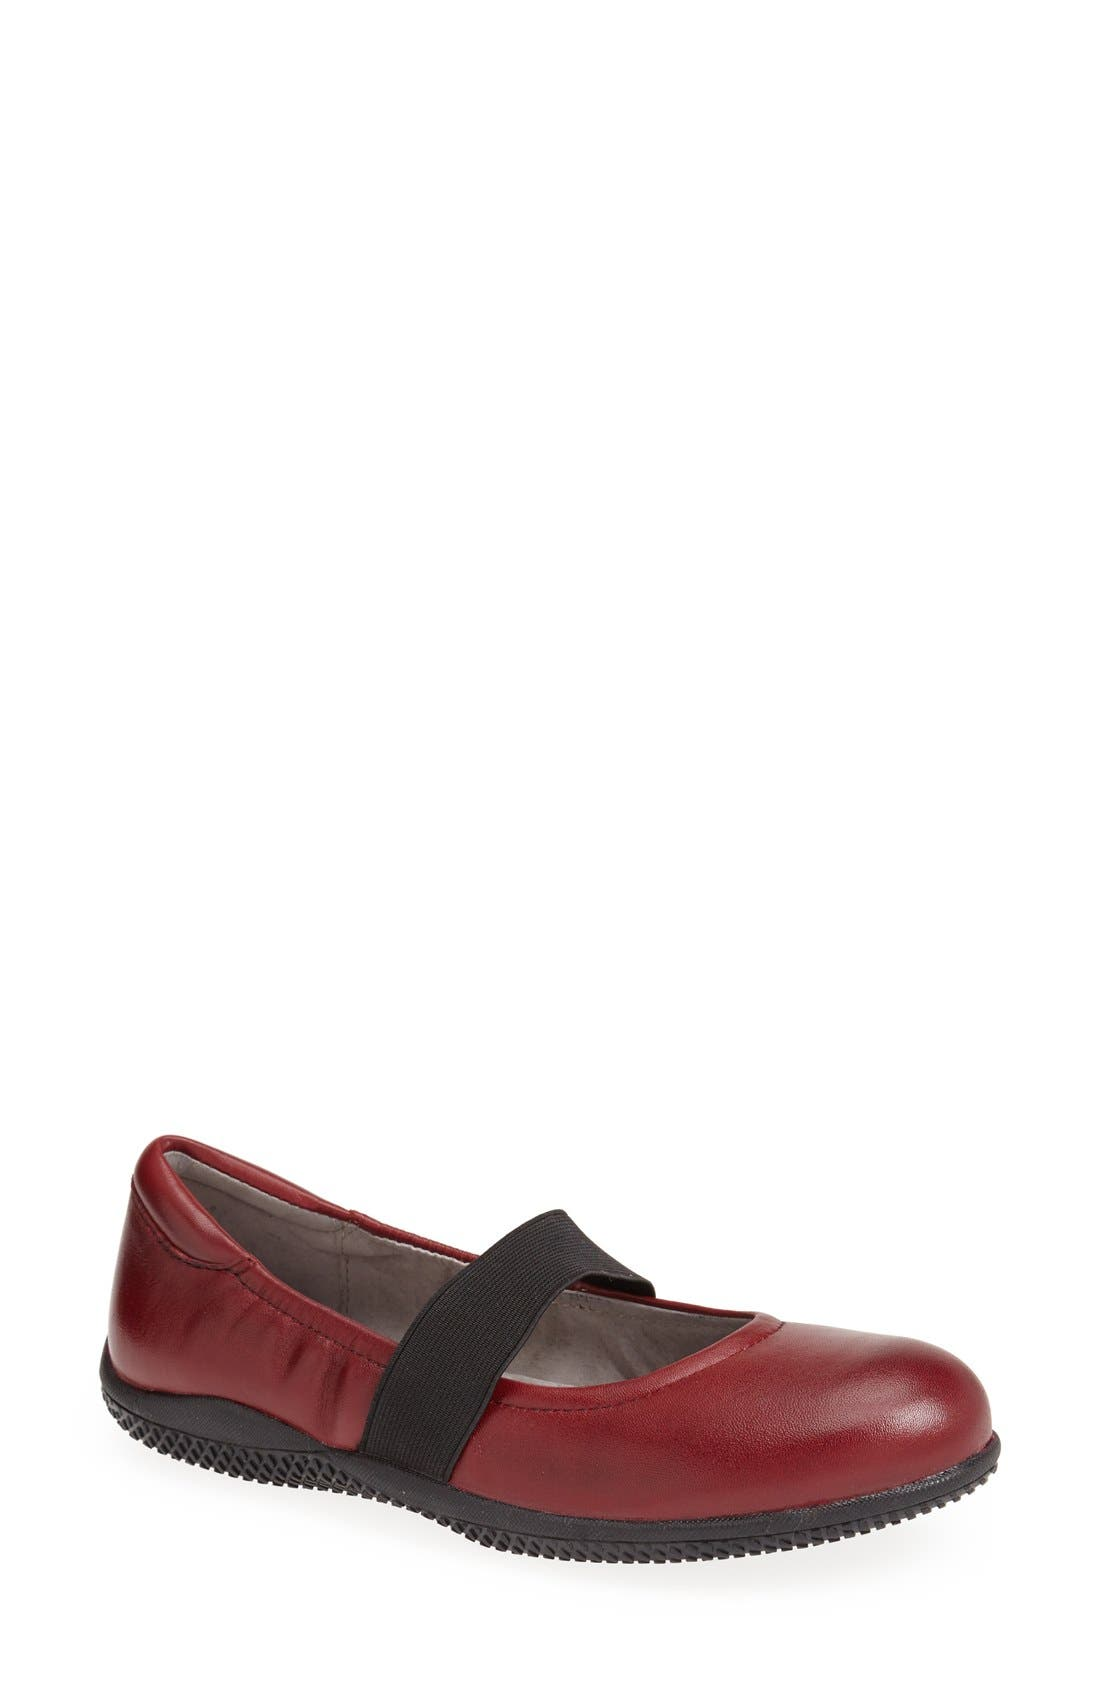 'High Point' Mary Jane Flat,                             Main thumbnail 1, color,                             Dark Red